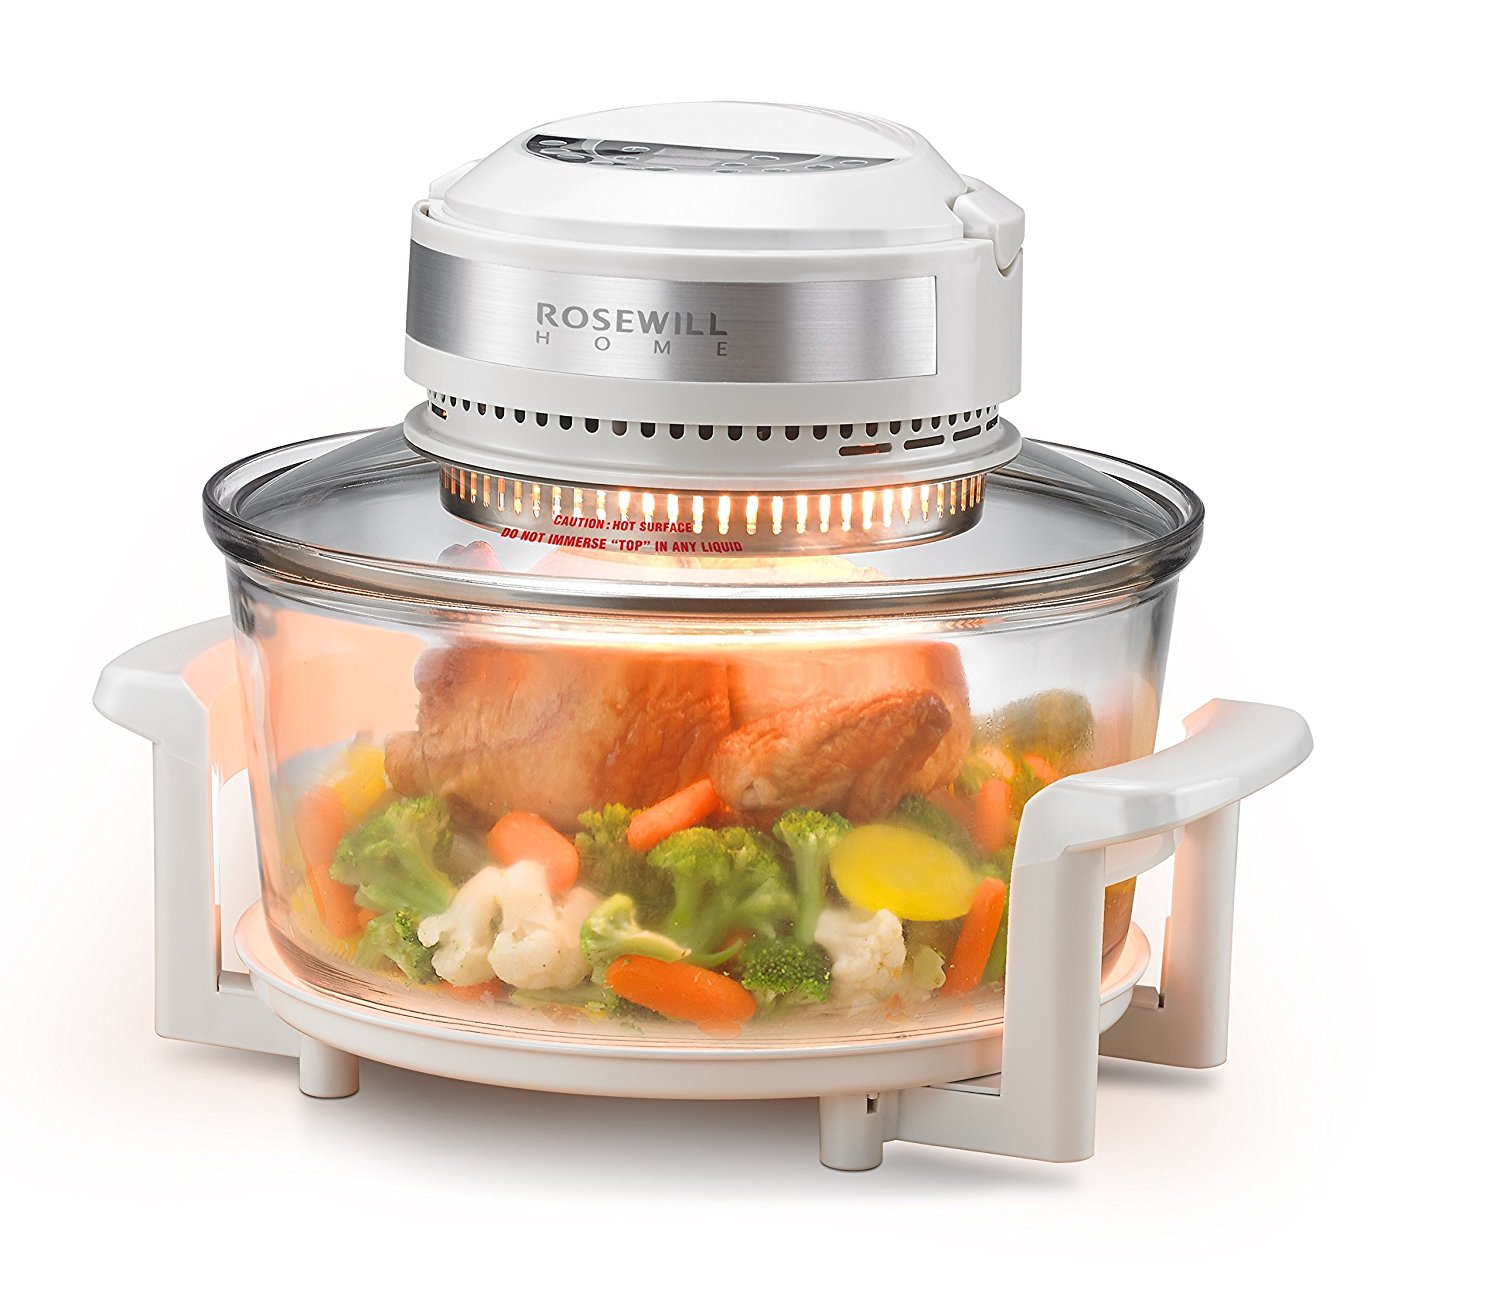 Rosewill Digital Halogen Convection Oven